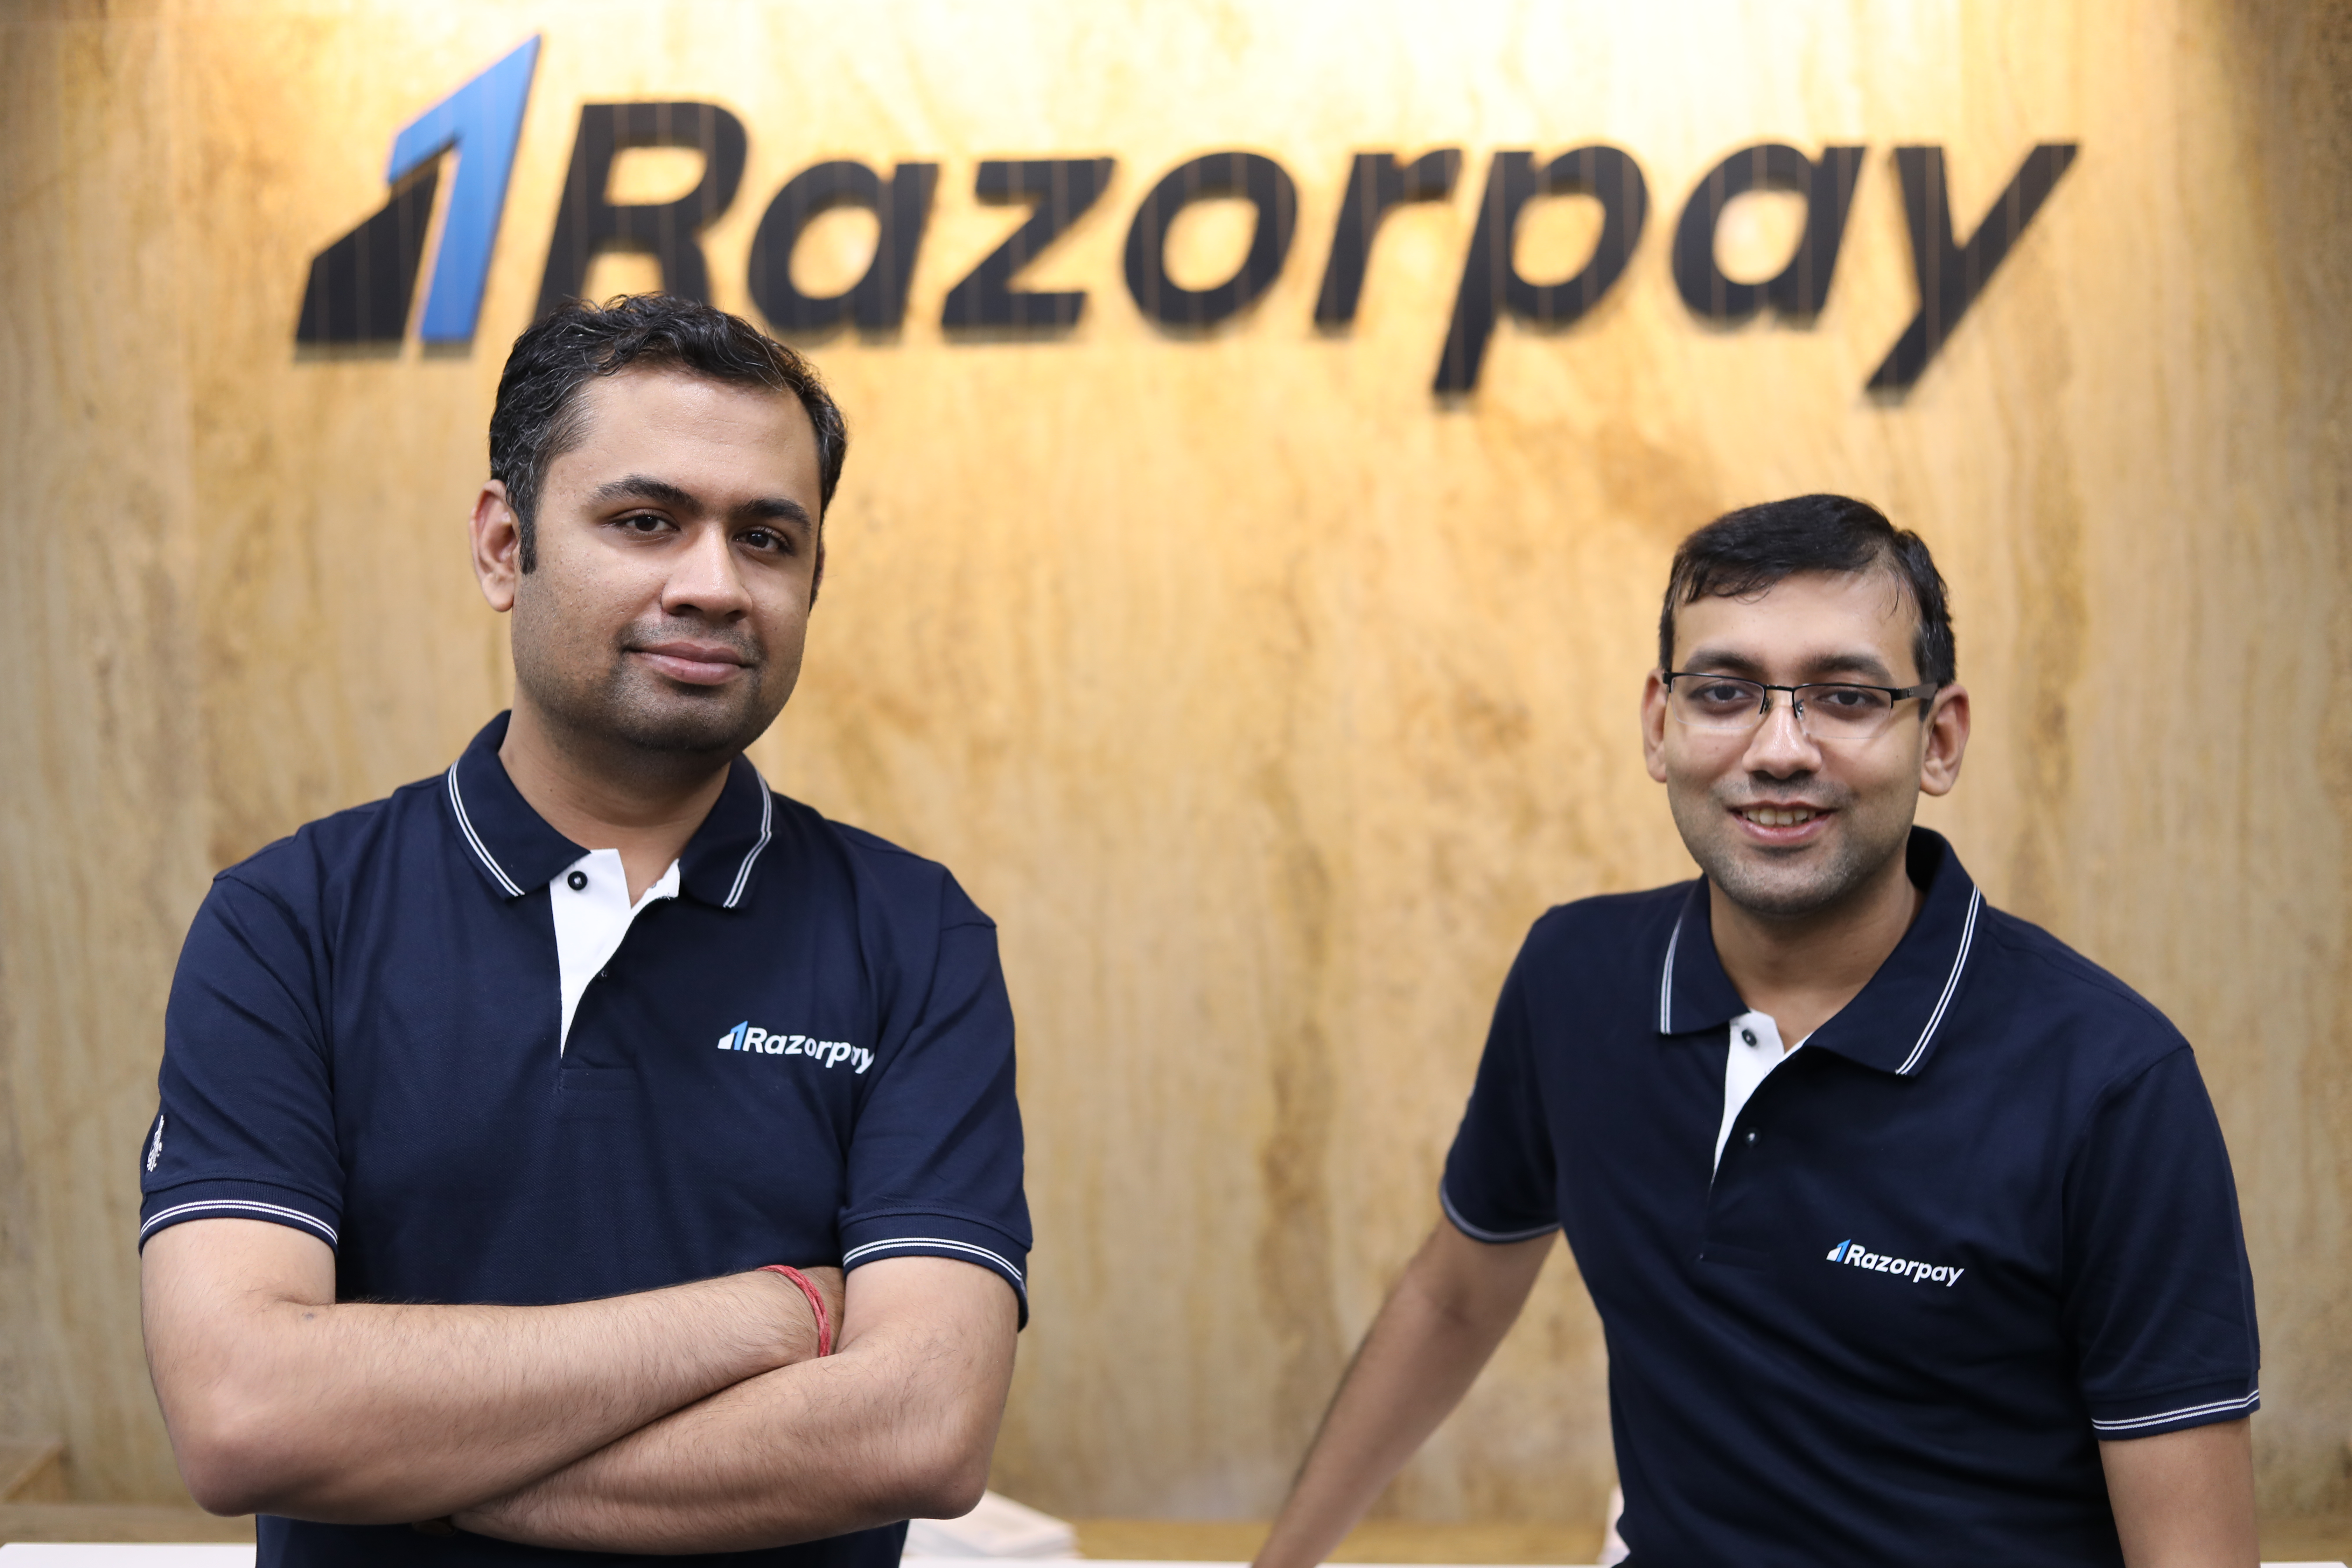 Razorpay Raises $160 Mn led by Sequoia Capital and GIC; Triples its Valuation to $3 Bn in 6 Months